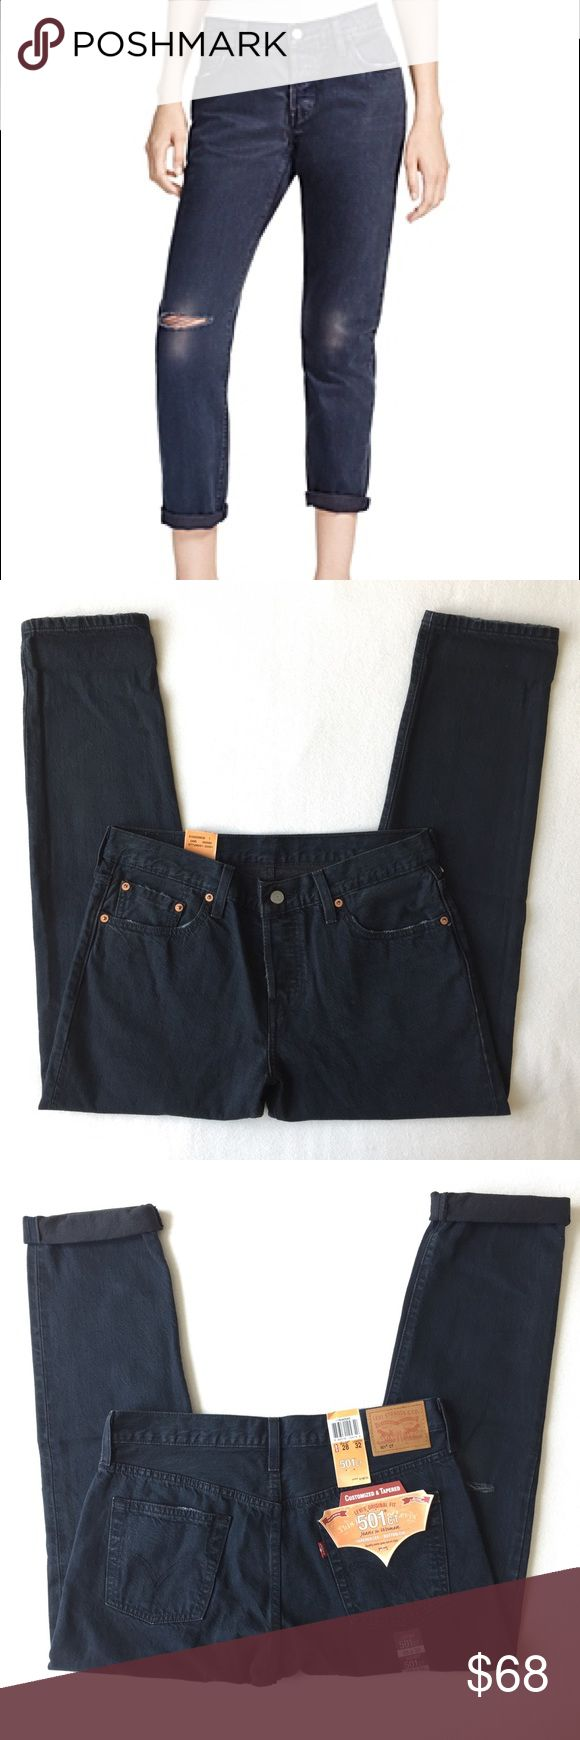 """Levi's 501 CT Original Button Fly Boyfriend Jeans Please Read the description! Thanks!  Brand new with tag Size:  Waist 27"""",  length 32"""" Waist 28"""",  length 32"""" Retail : $168 Color may be slightly different biz of lighting  Price is FIRM unless bundled NO Trades         NO Holds All sales are final Welcome product-related questions! You are responsible for your size. Levi's Jeans Boyfriend"""